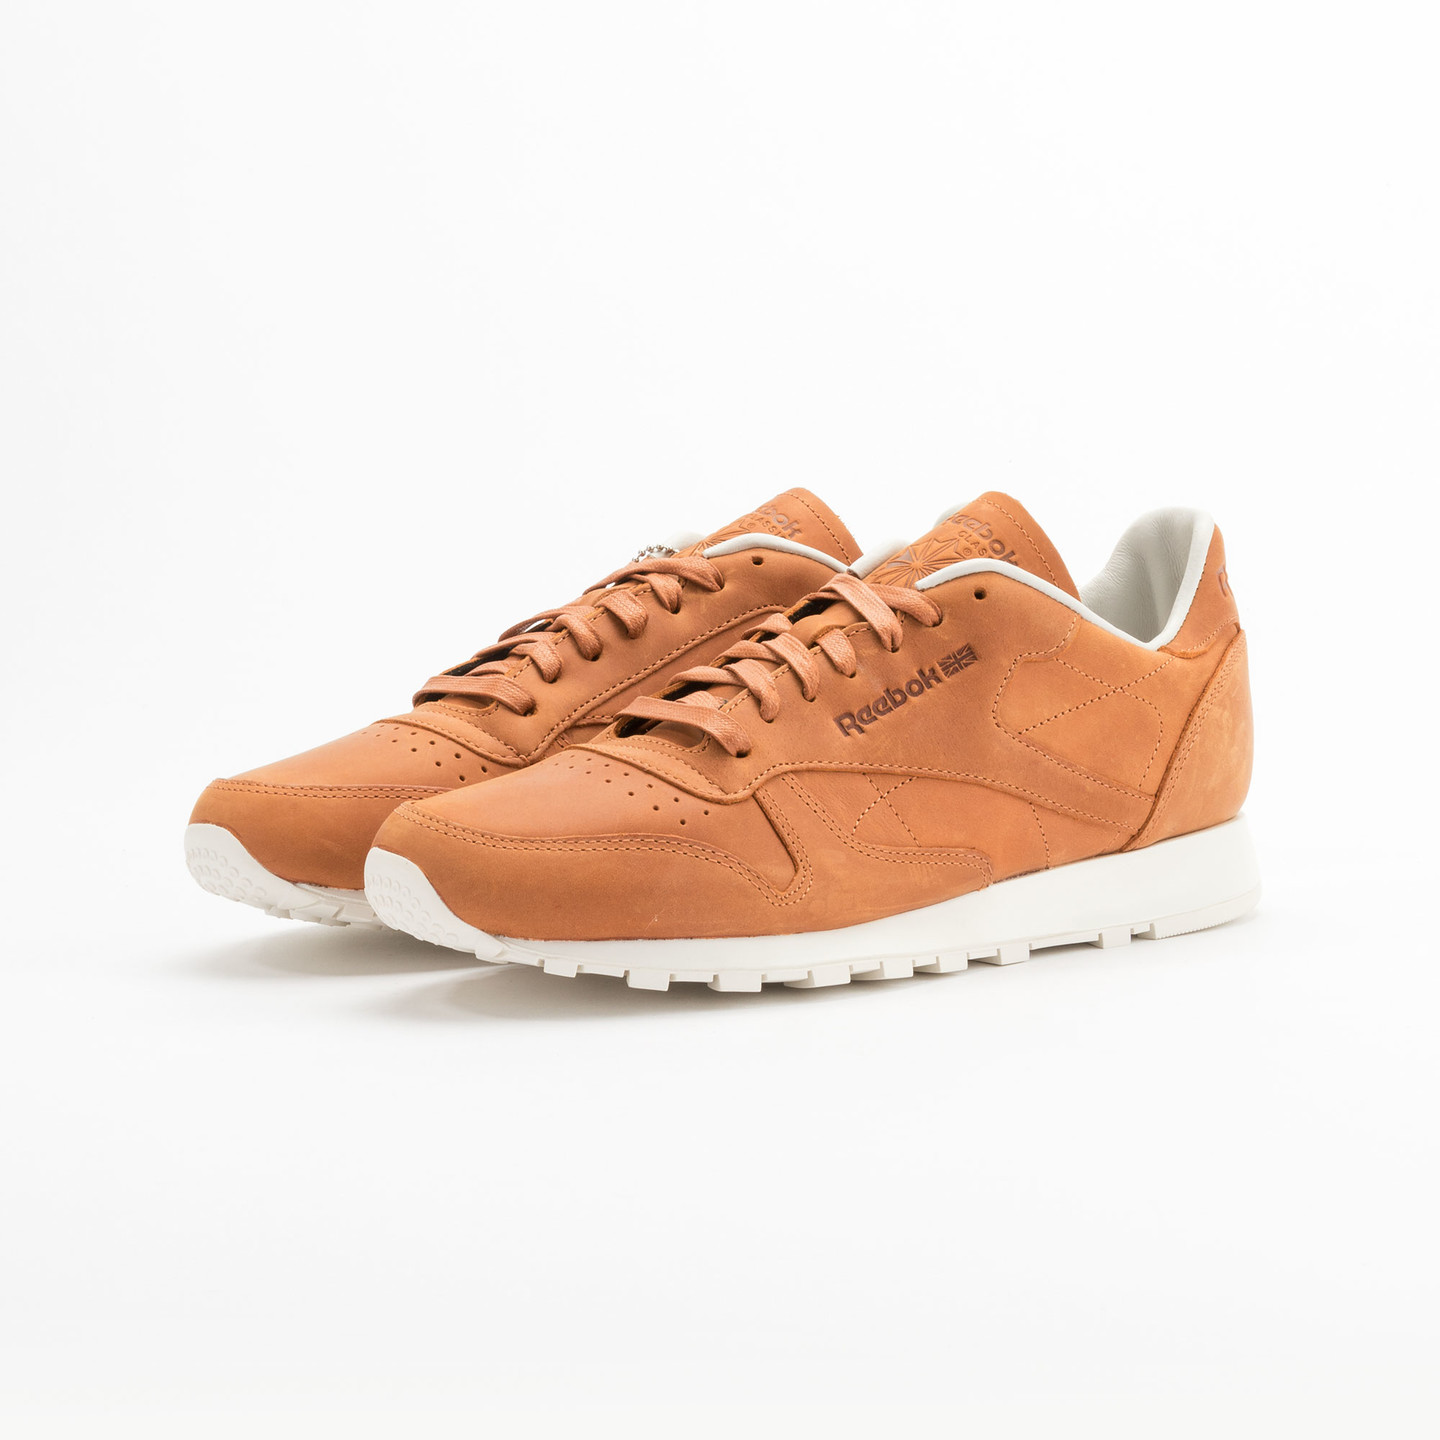 Reebok Classic Leather Lux PW Rusty / Beige / Chalk V68686-45.5